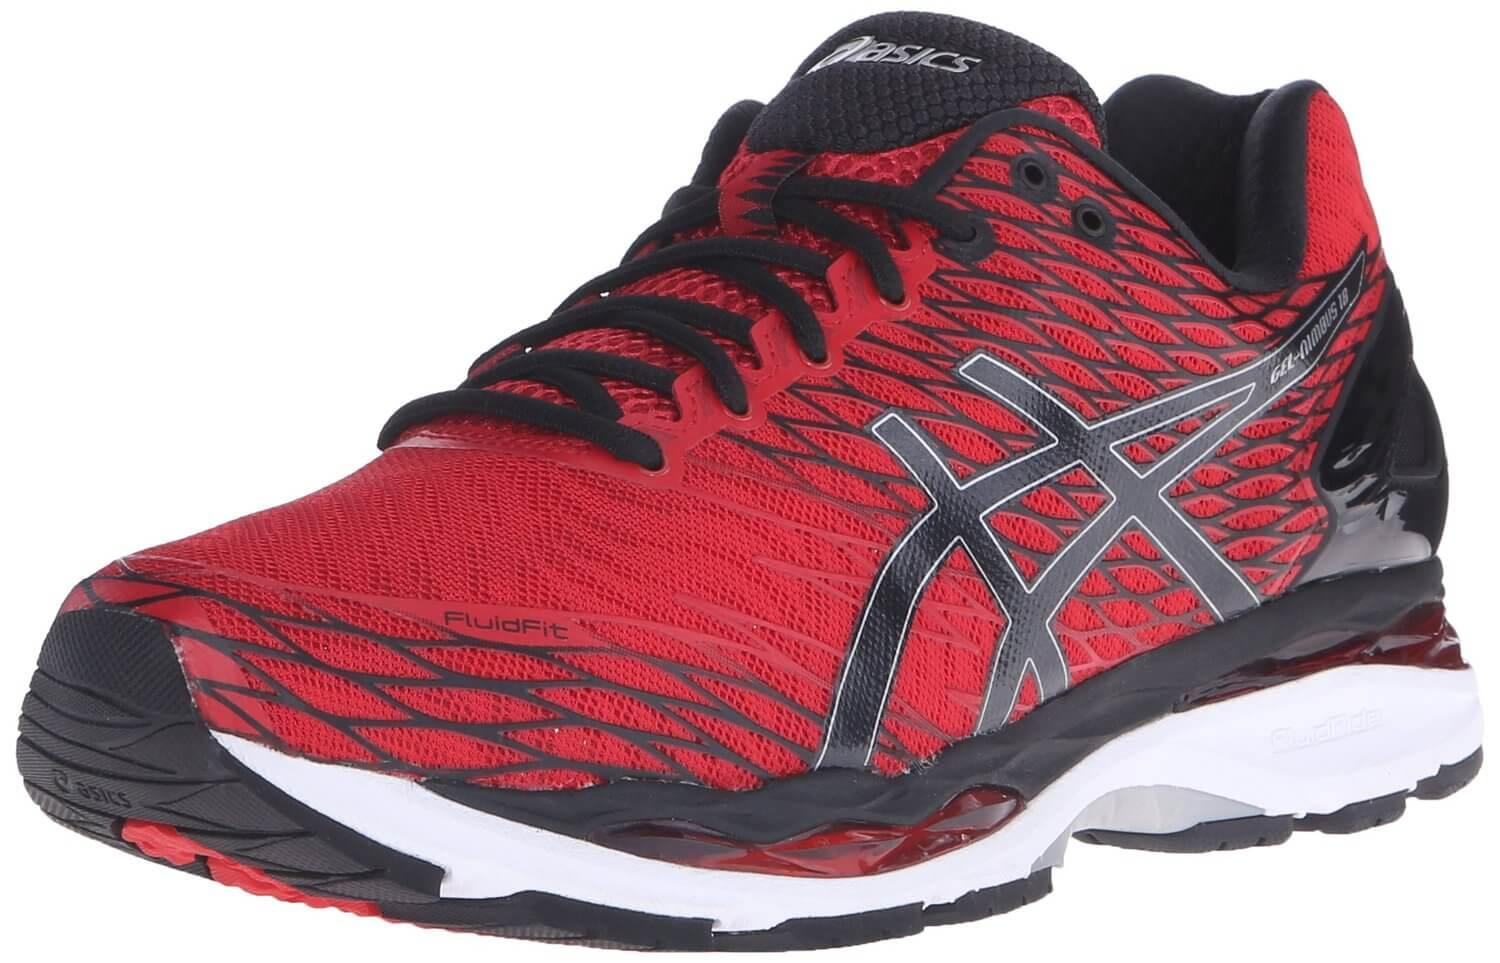 Asics Gel Nimbus 18 Fully Reviewed